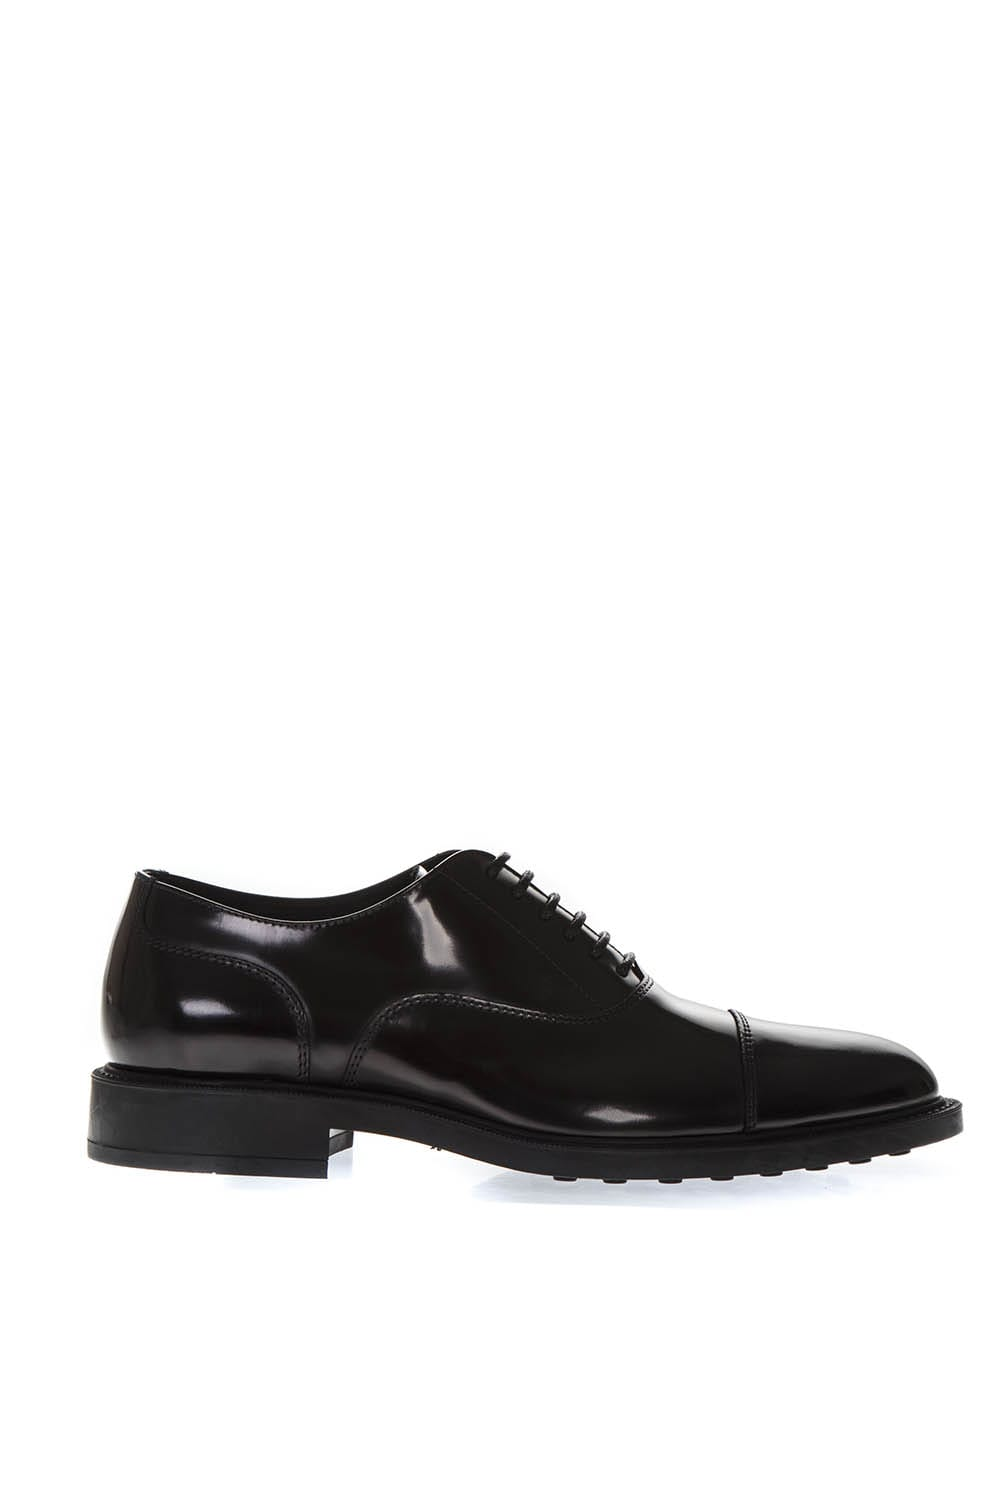 Tods Black Classic Laced Up Shoes In Leather